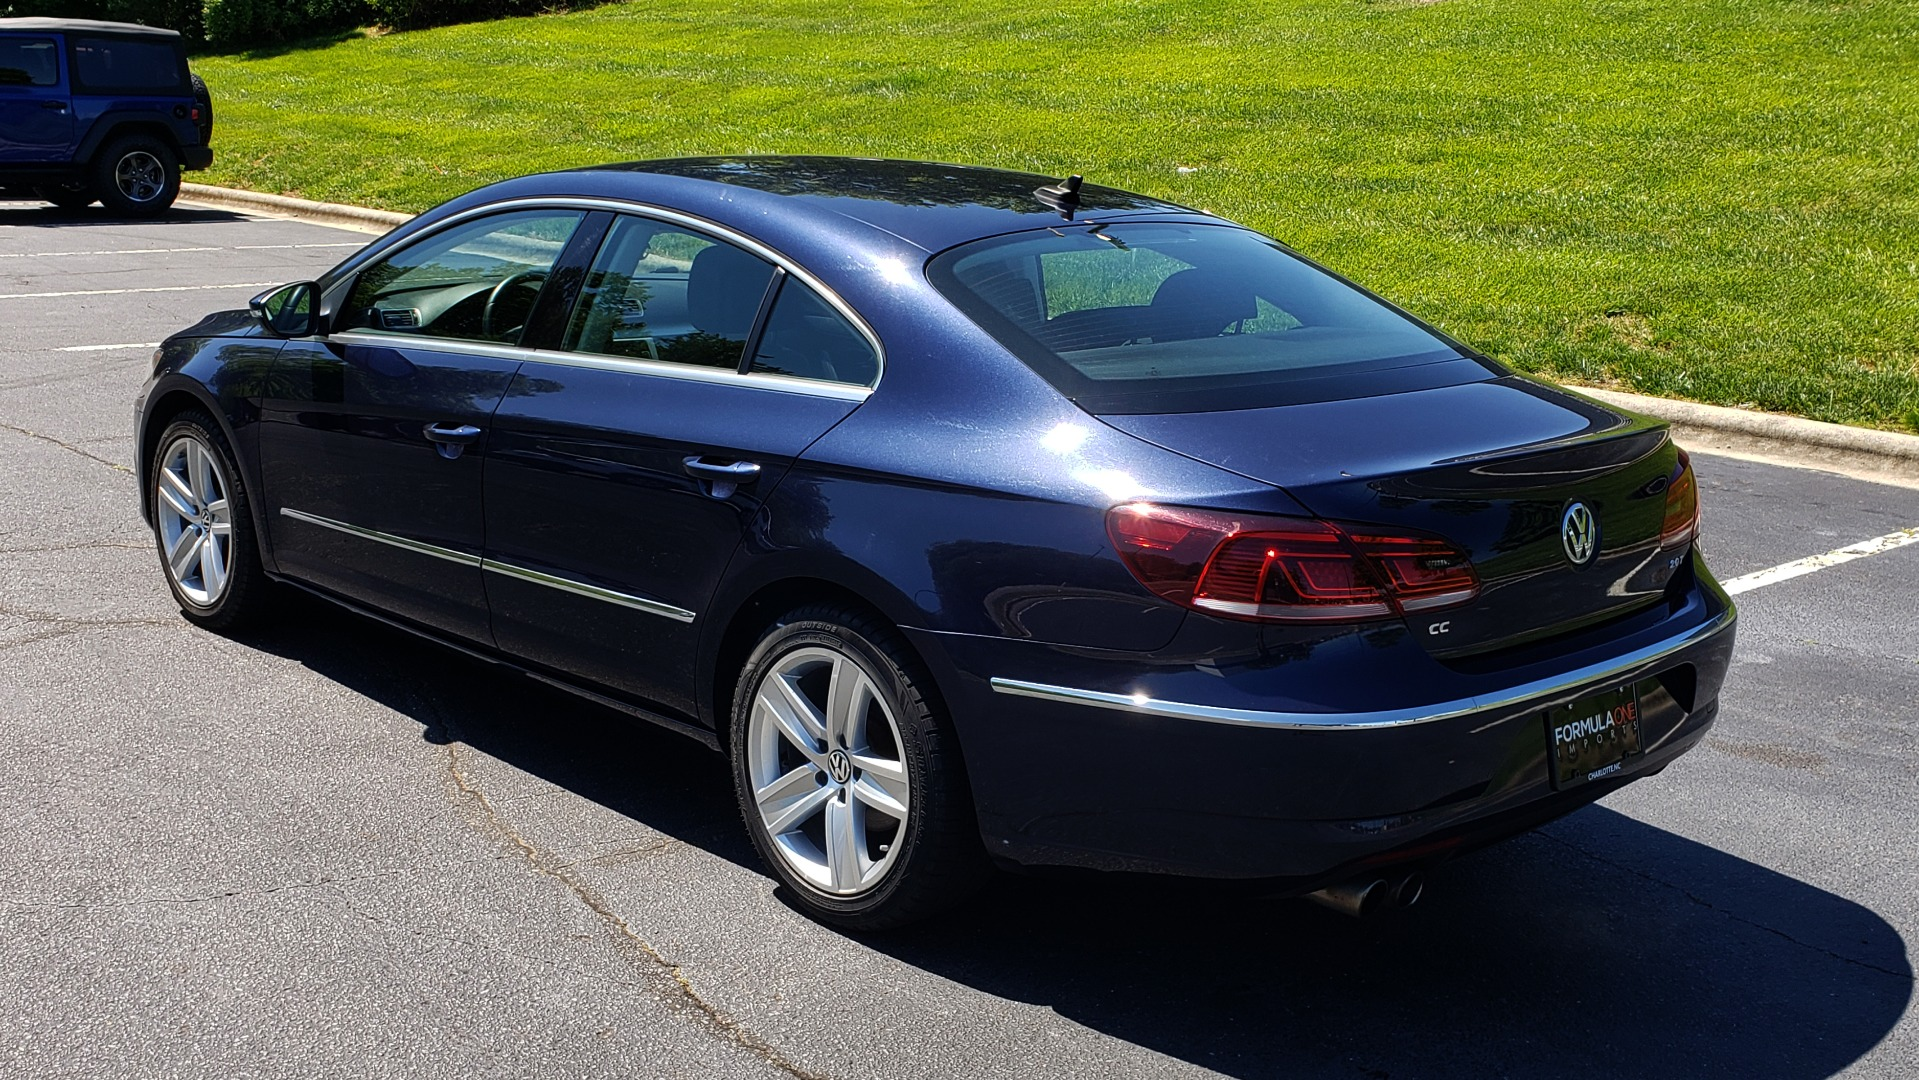 Used 2013 Volkswagen CC SPORT W/LIGHTING PKG / 2.0L 4-CYL / DSG 6-SPD AUTO for sale Sold at Formula Imports in Charlotte NC 28227 3